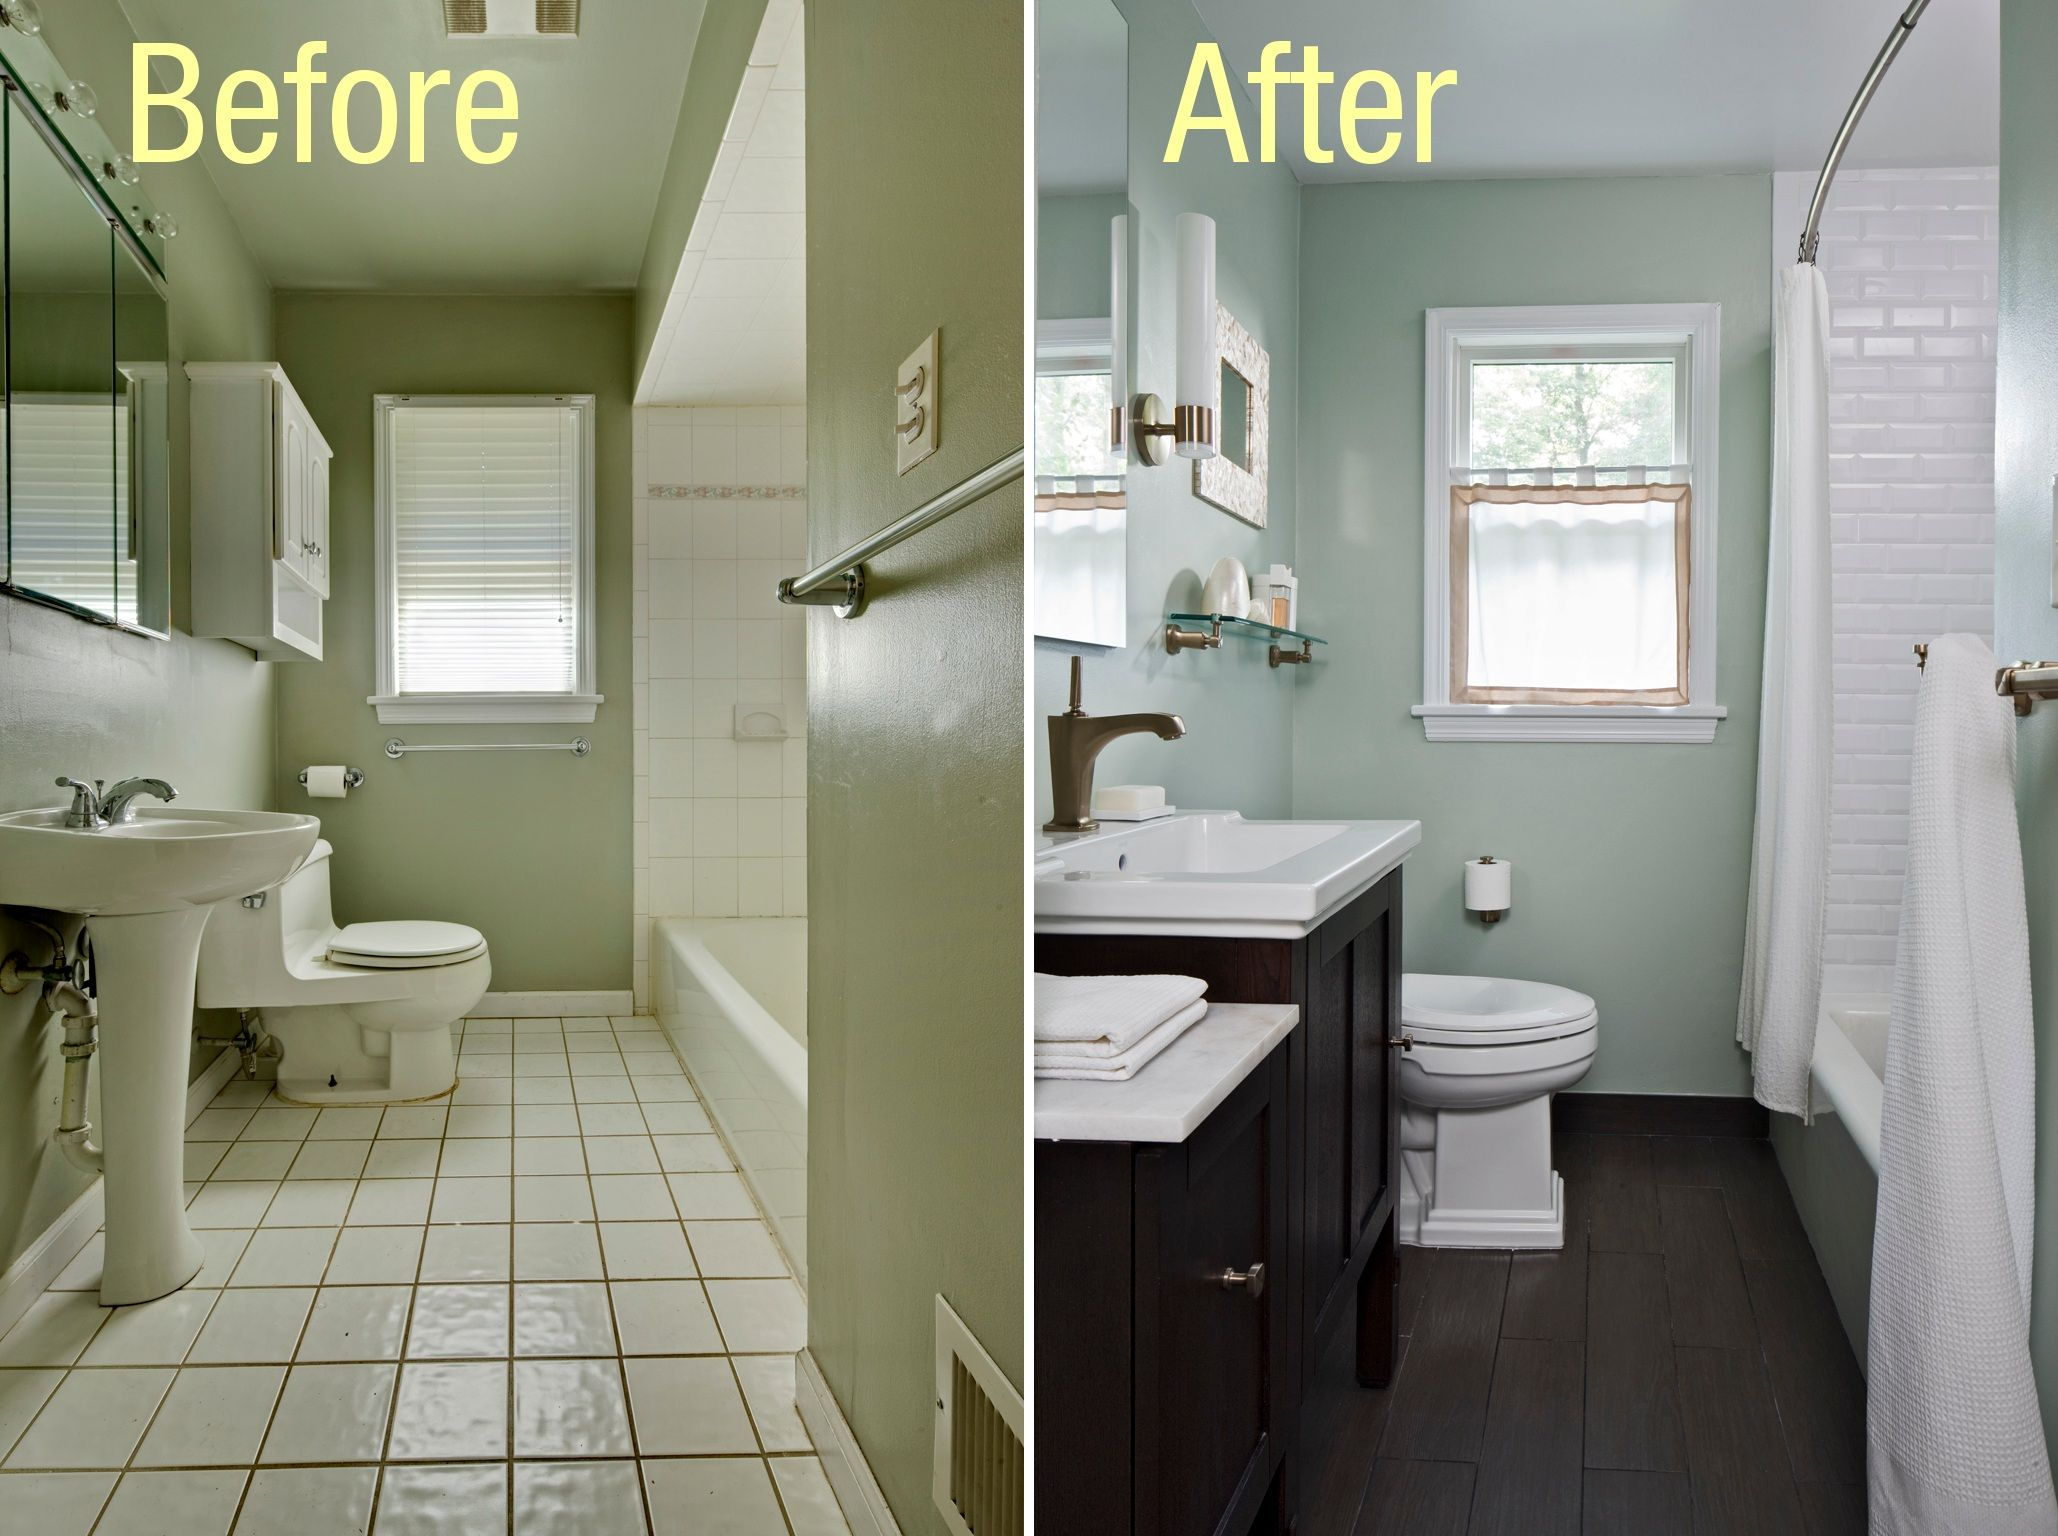 Bathroom Vanity Renovation Ideas bathroom-vanities-before-and-after-photos-of-bathroom-renovations